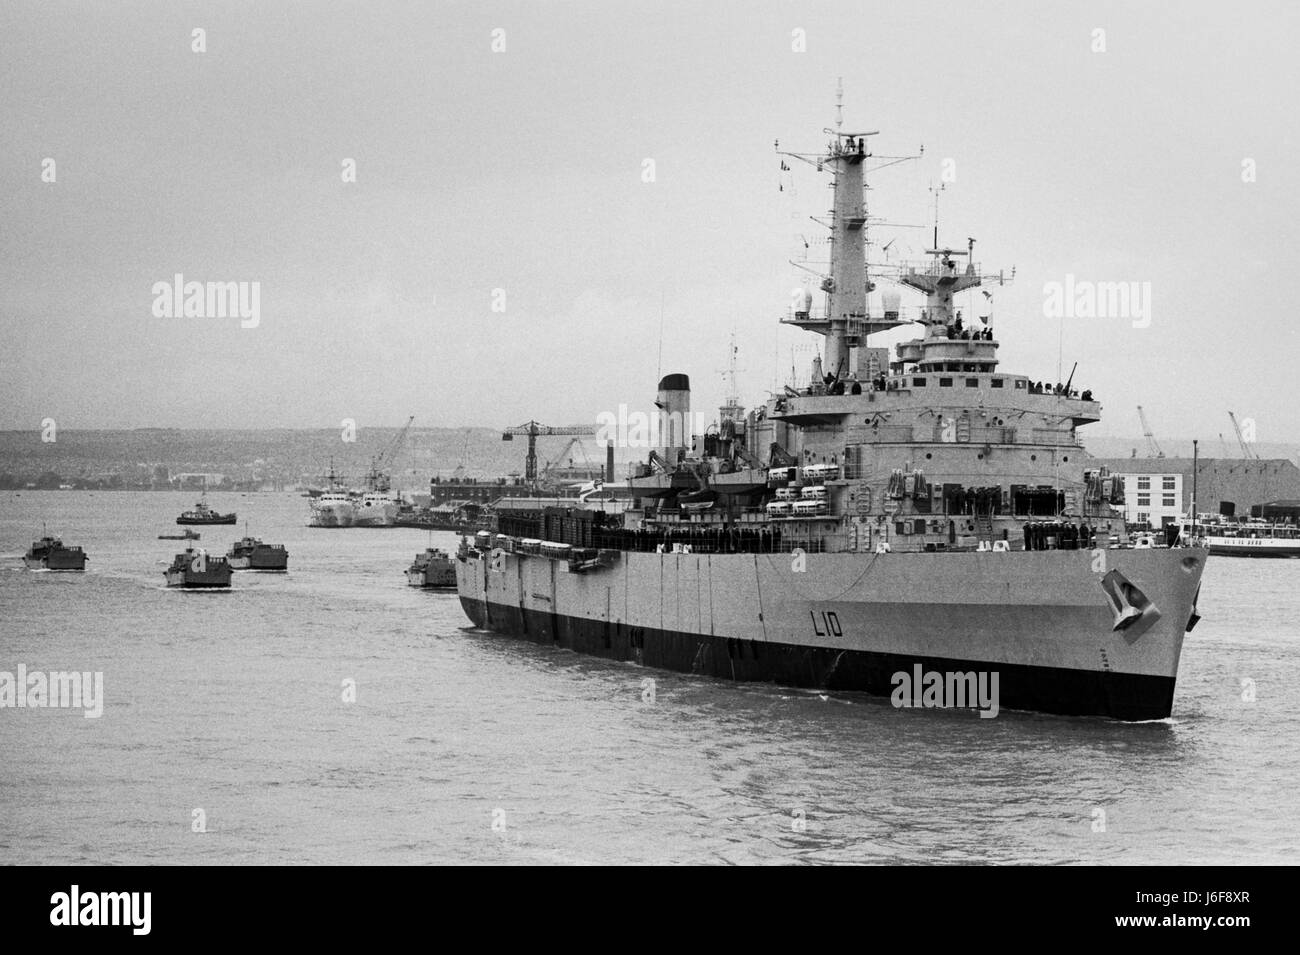 AJAXNETPHOTO. 6TH APRIL, 1982. PORTSMOUTH, ENGLAND. - HMS FEARLESS DEPARTS PORTSMOUTH FOR THE FALKLAND ISLANDS FOLLOWED - Stock Image